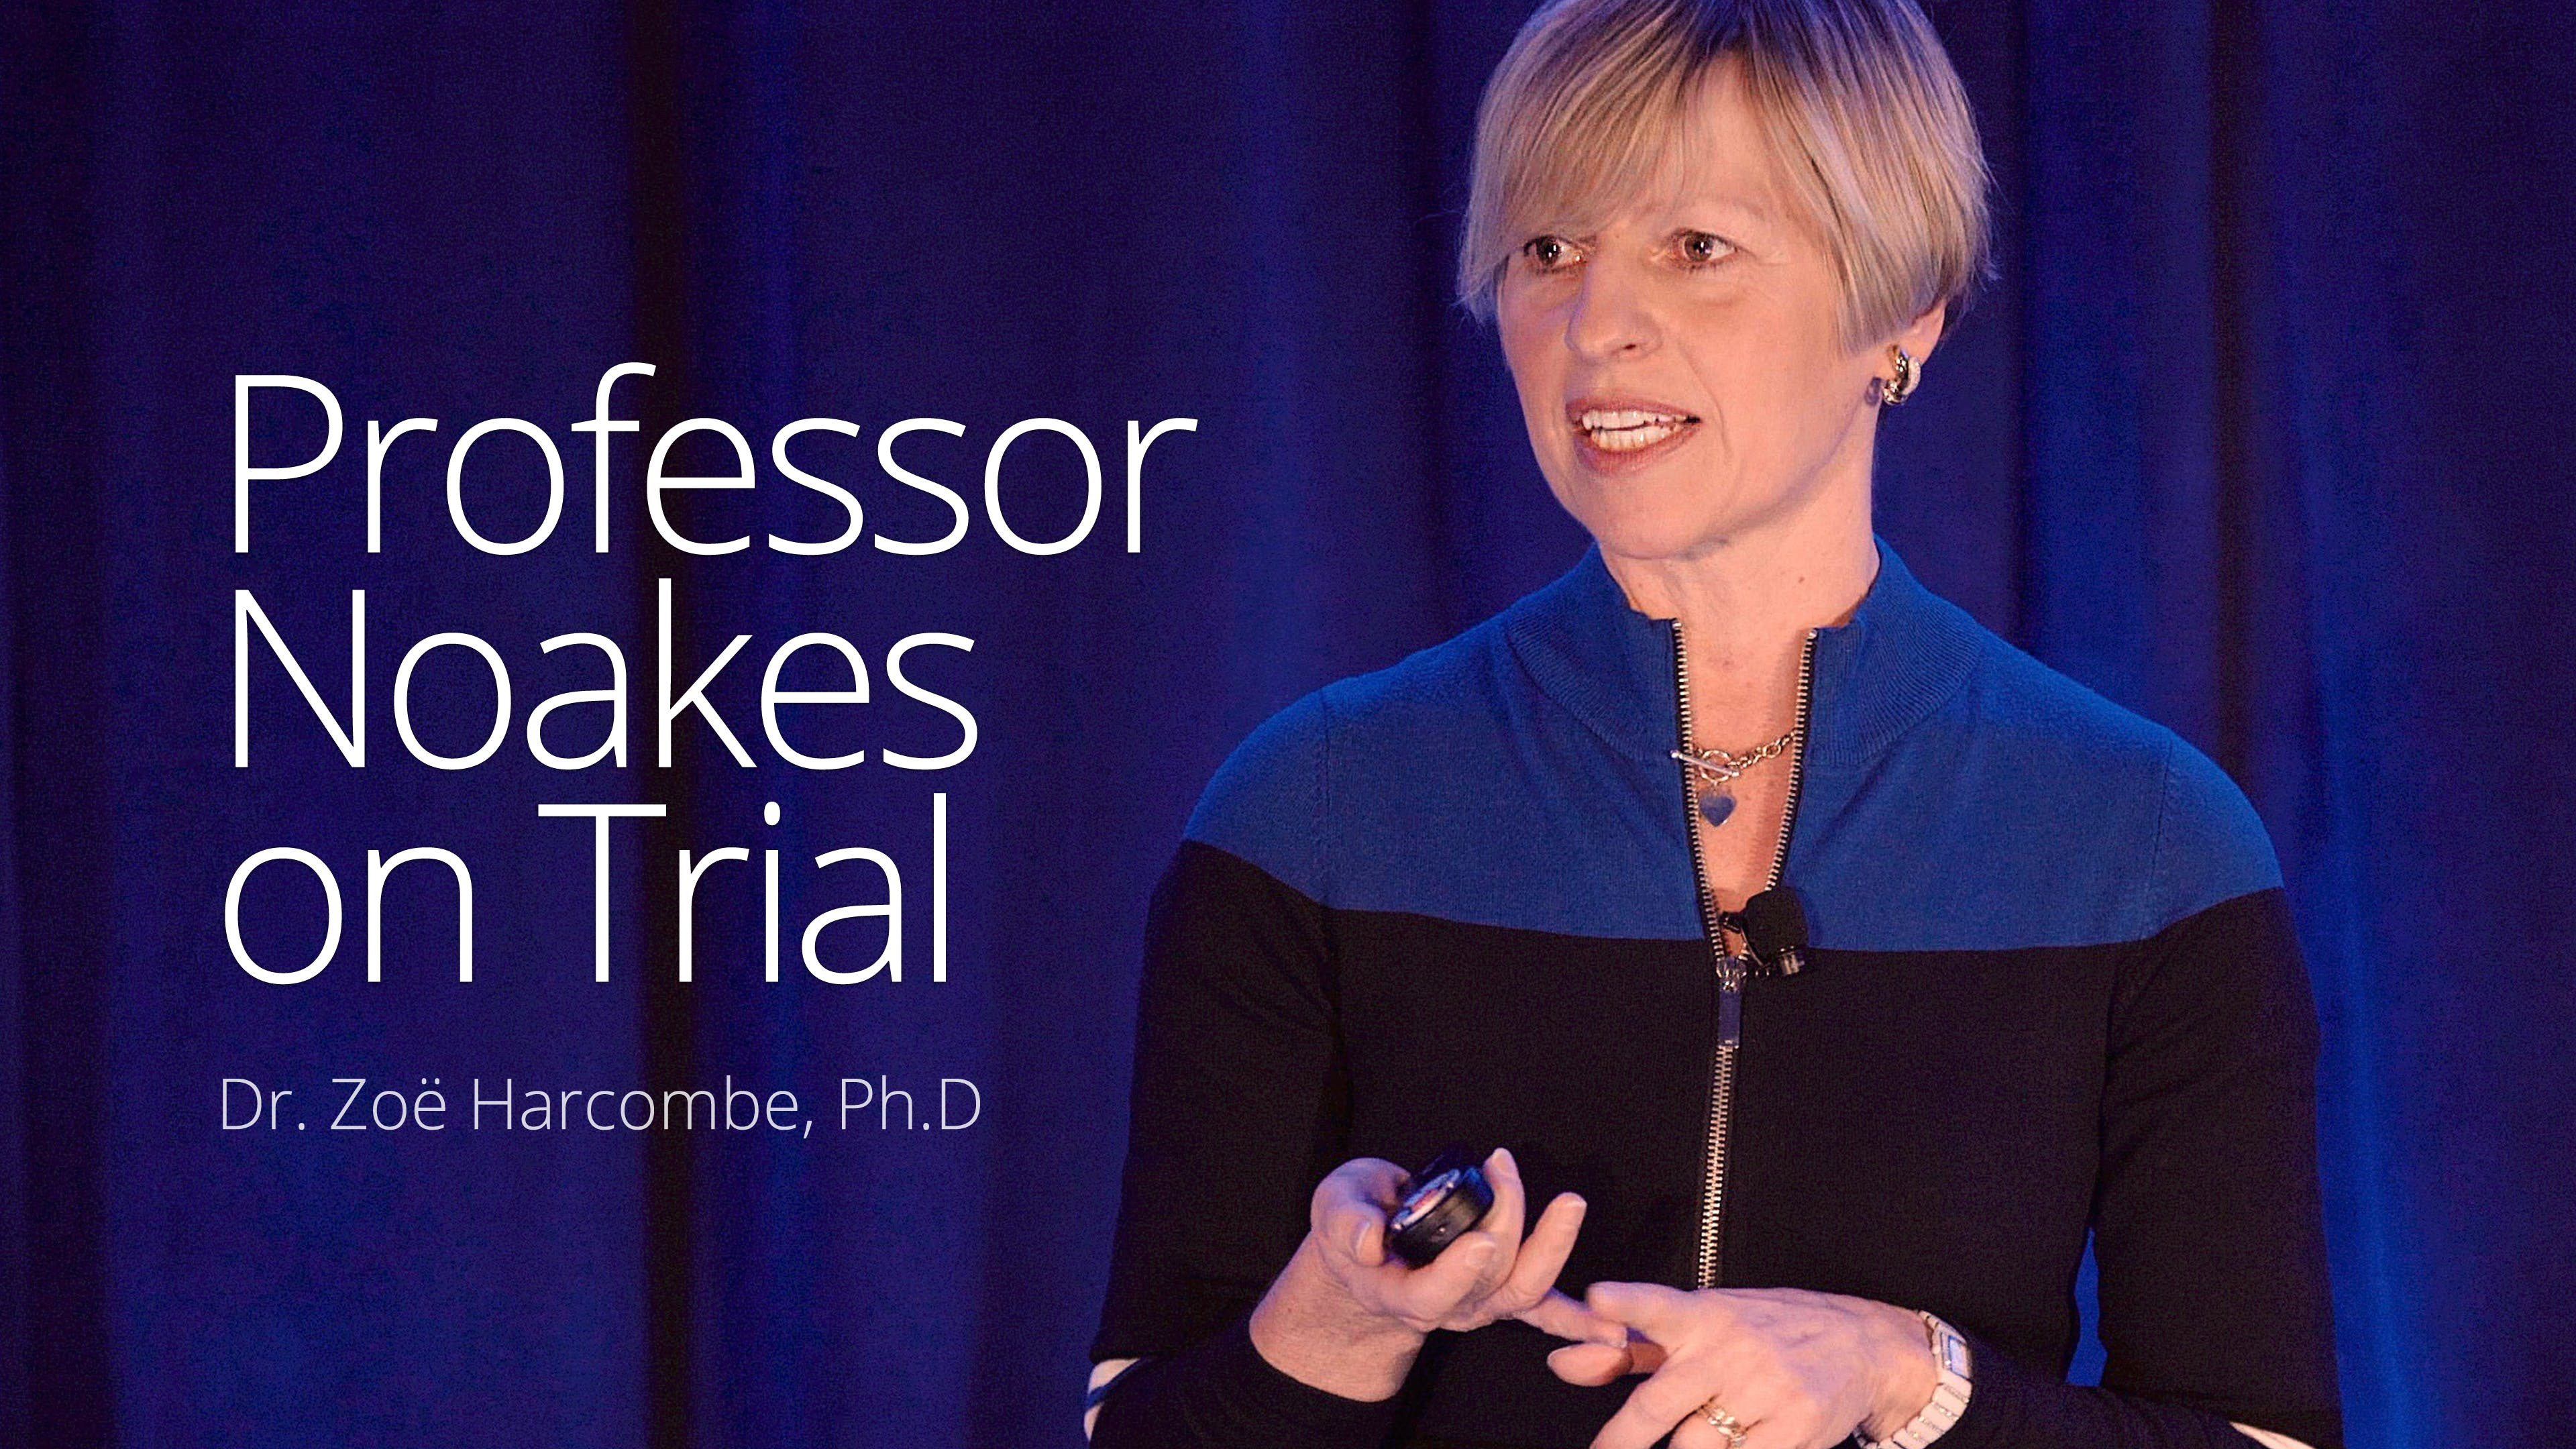 Professor Noakes on Trial